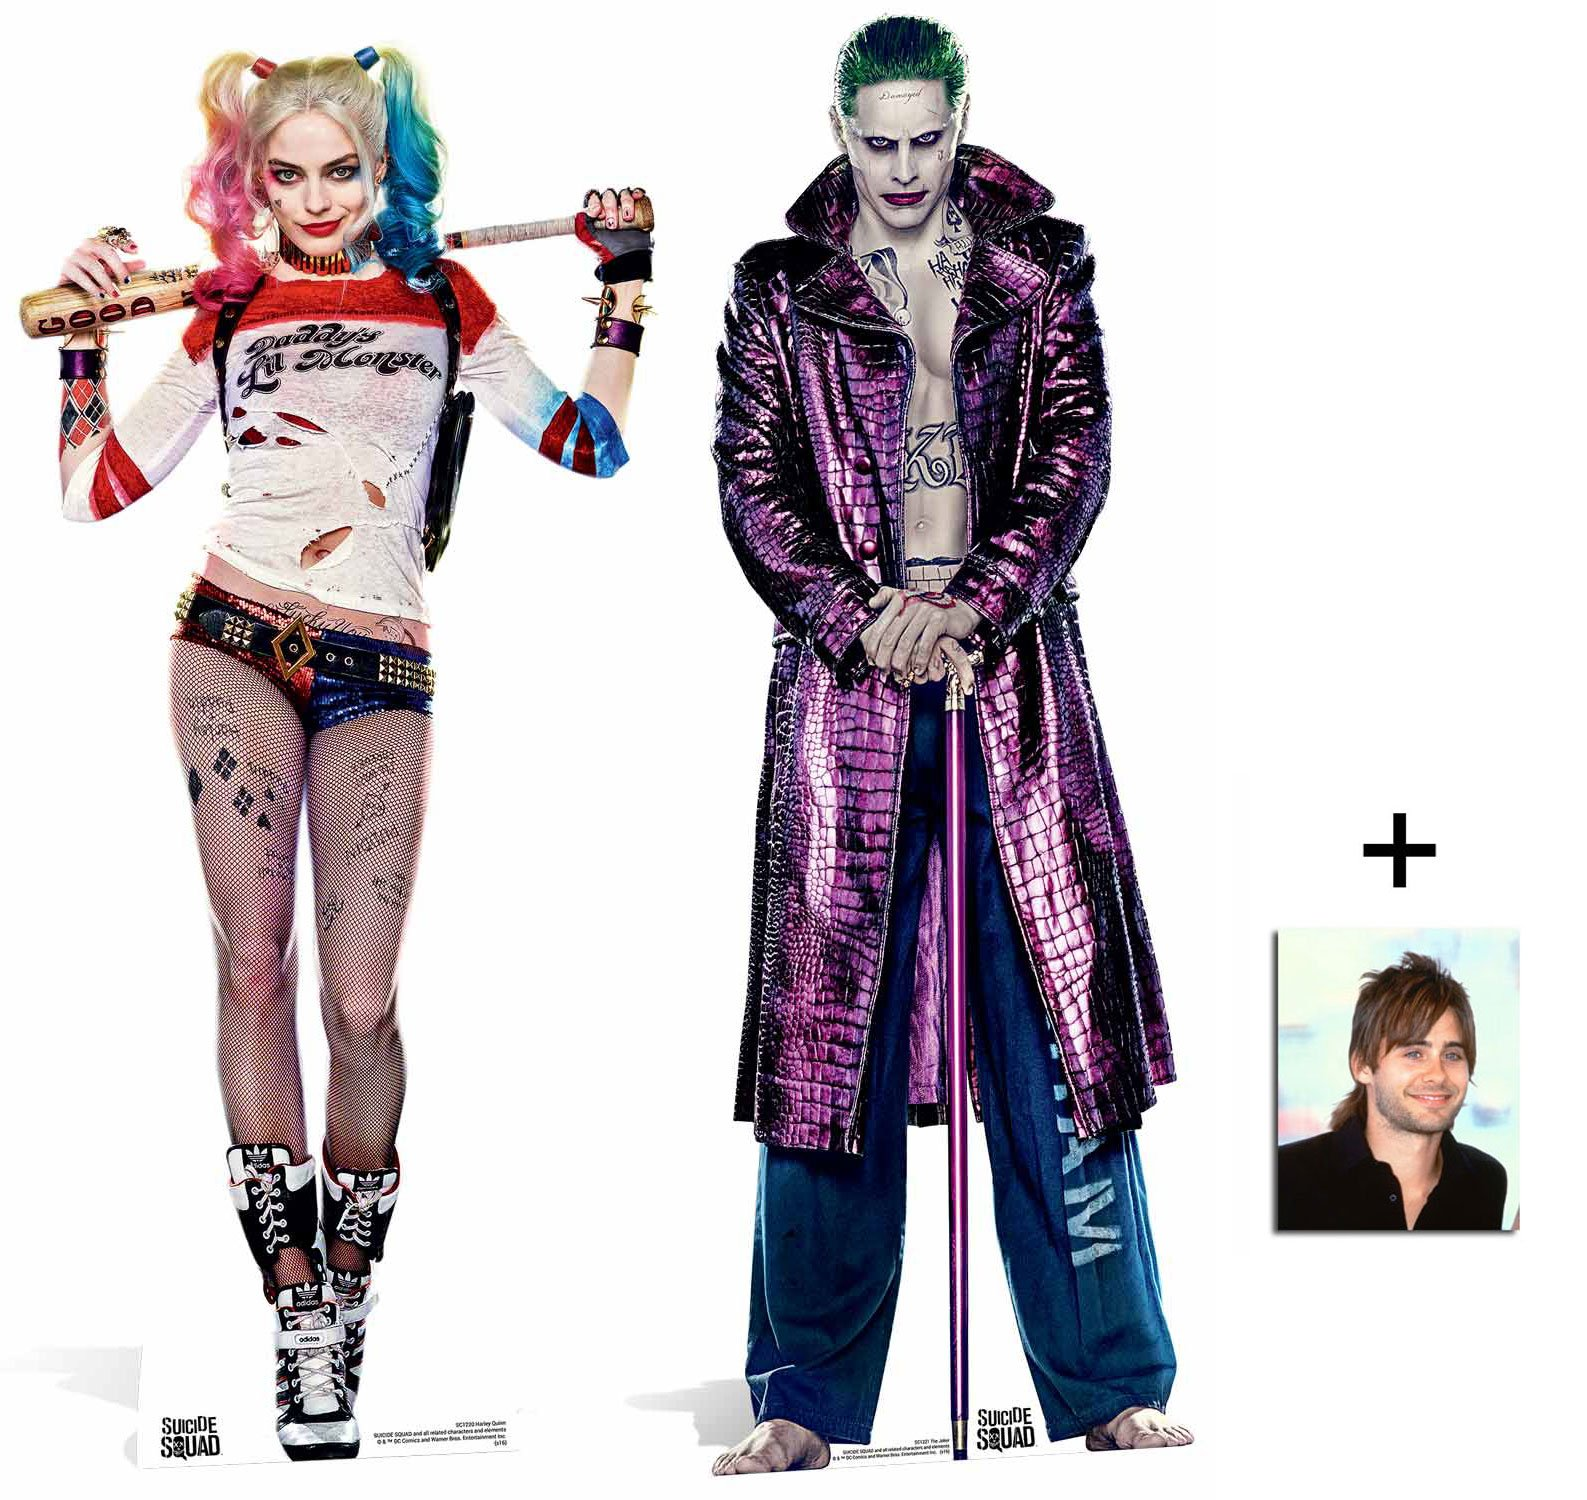 Fan Pack - Suicide Squad Harley Quinn and The Joker Movie Twin Pack Lifesize Cardboard Cutout / Standee / Stand Up - Includes 8x10 Star Photo by BundleZ-4-FanZ Fan Packs